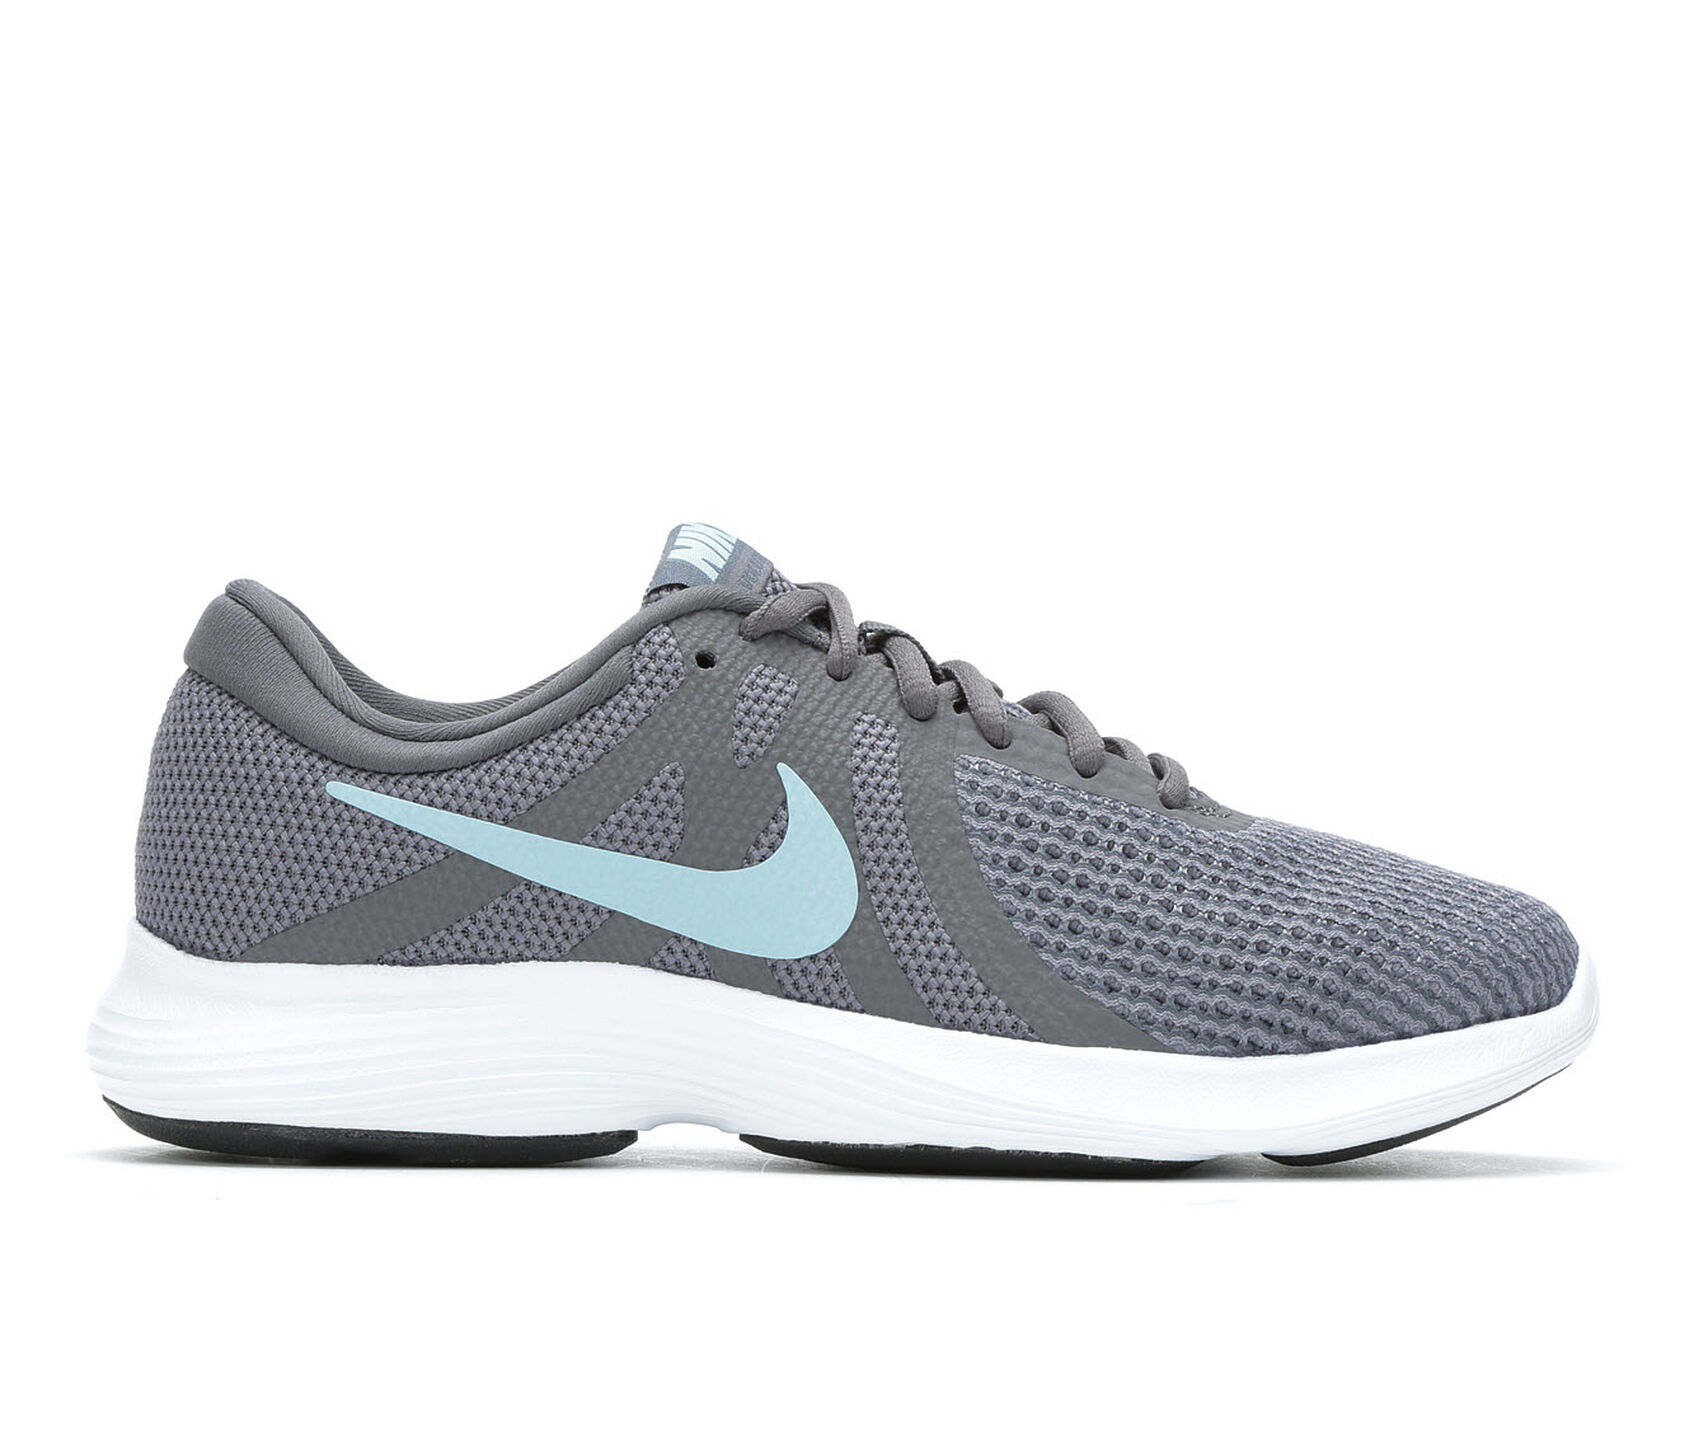 b2fc0baa76546 Women s Nike Revolution 4 Running Shoes